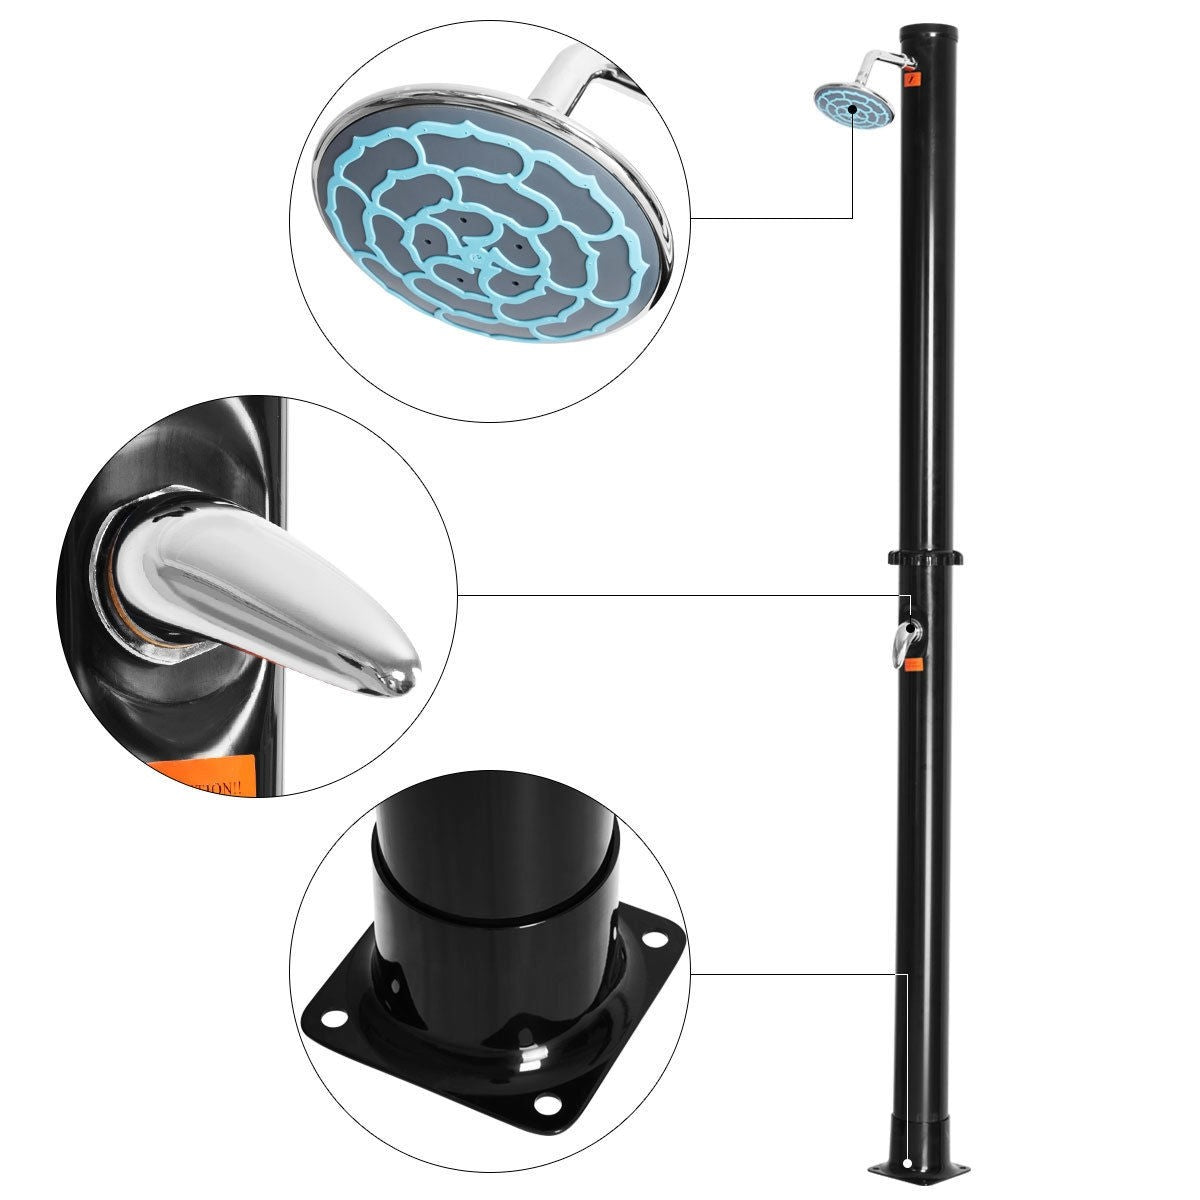 7.2Ft 5.5 Gallon Solar Heated Outdoor Shower with Shower Head